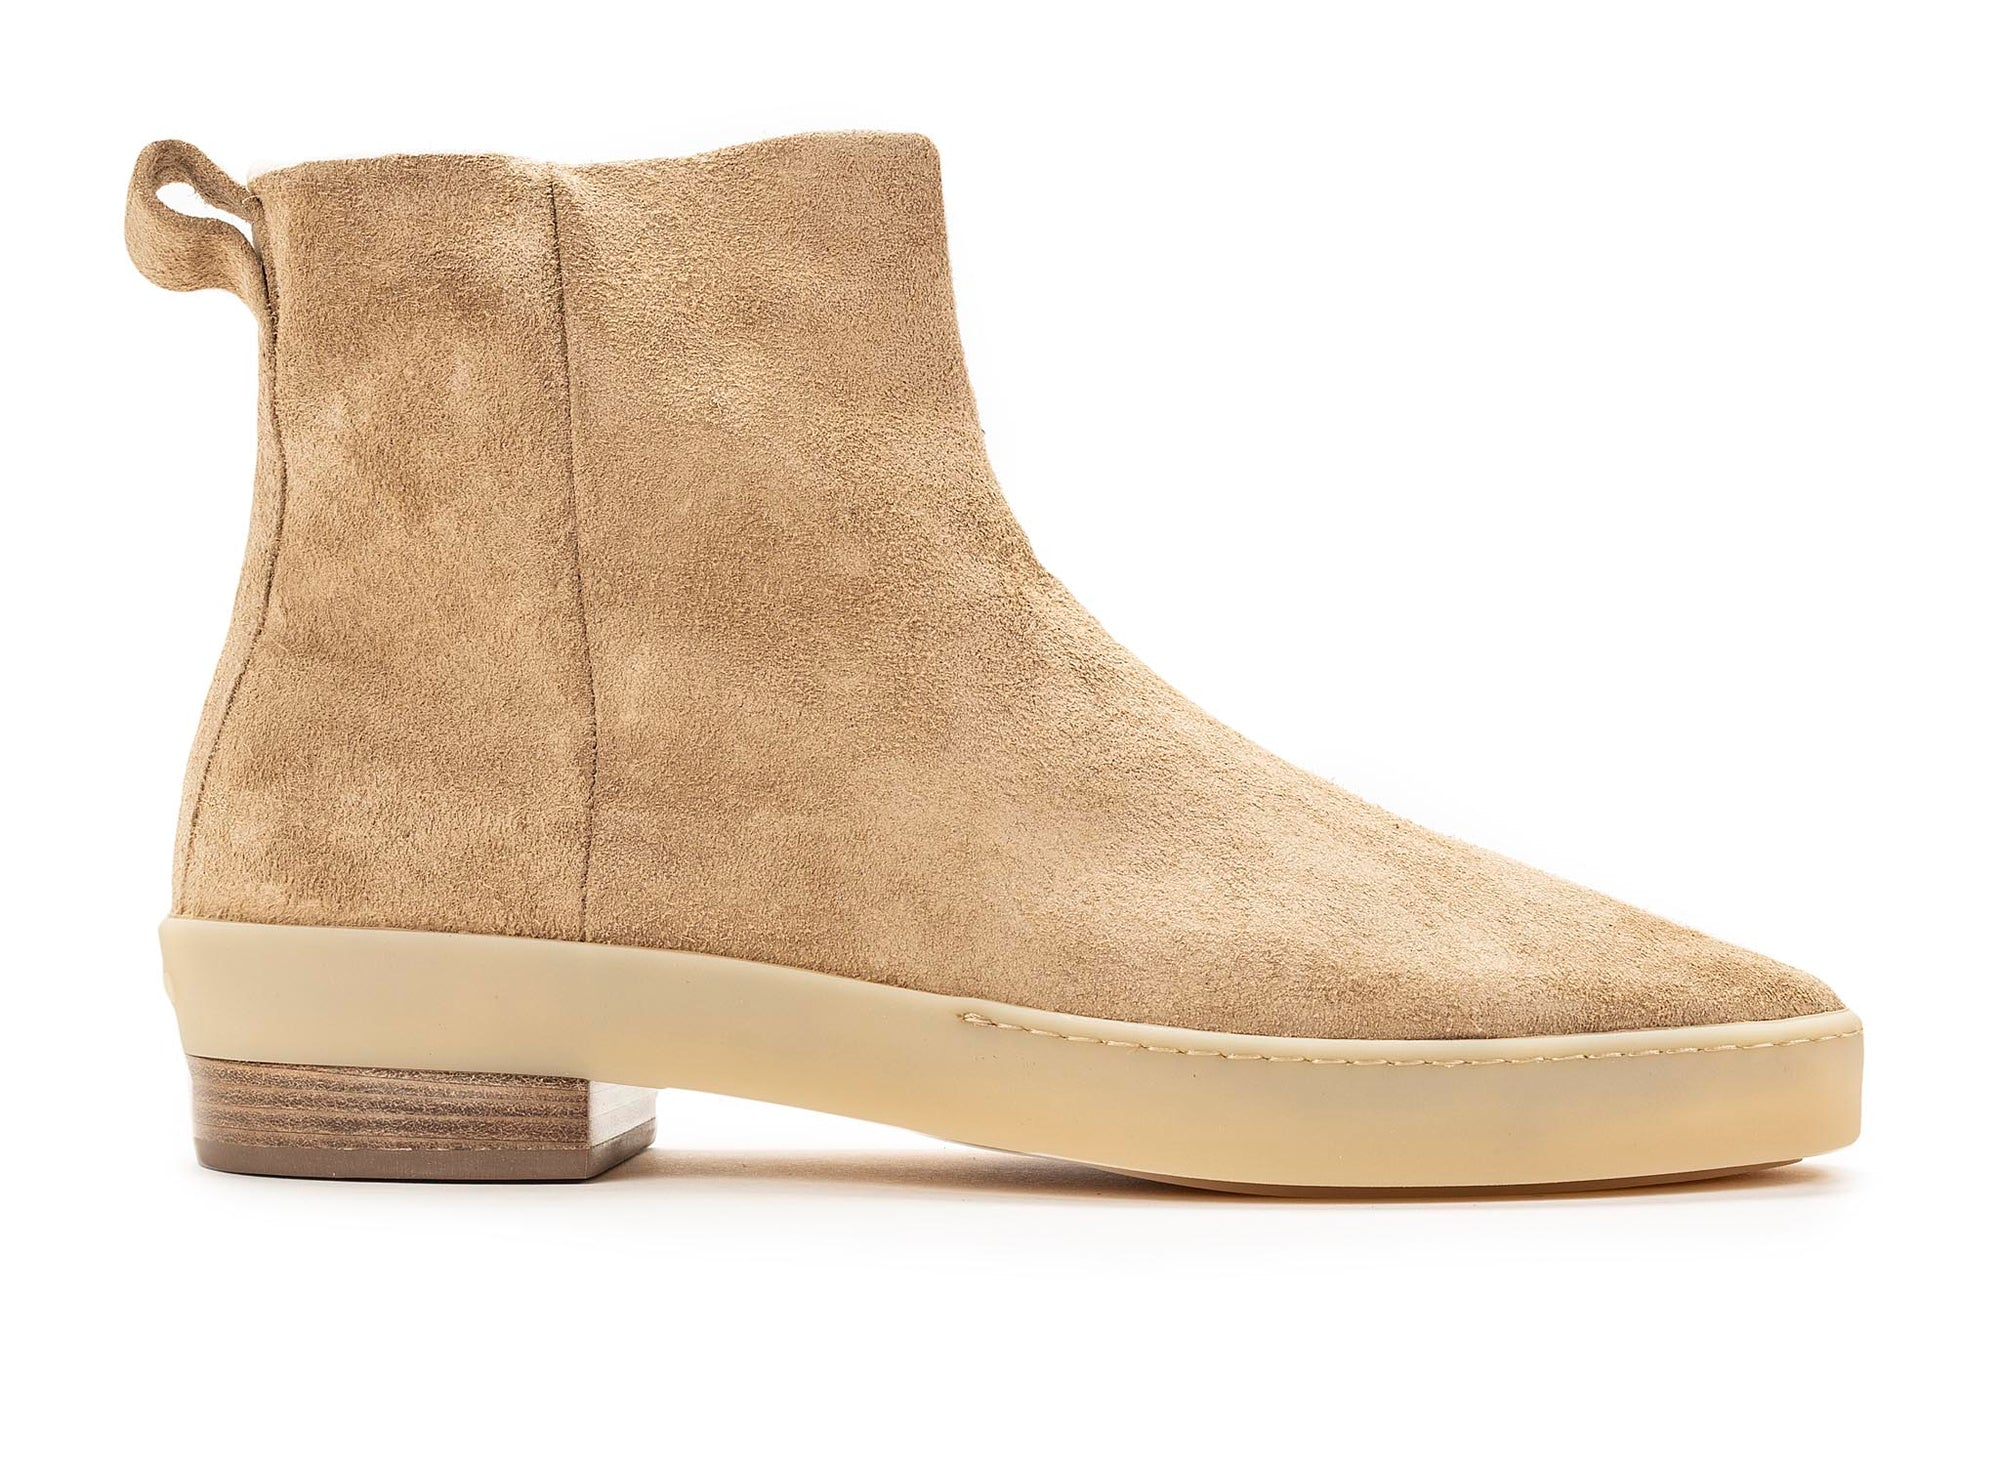 Fear of God Chelsea Santa Fe Boot 'Calcare'